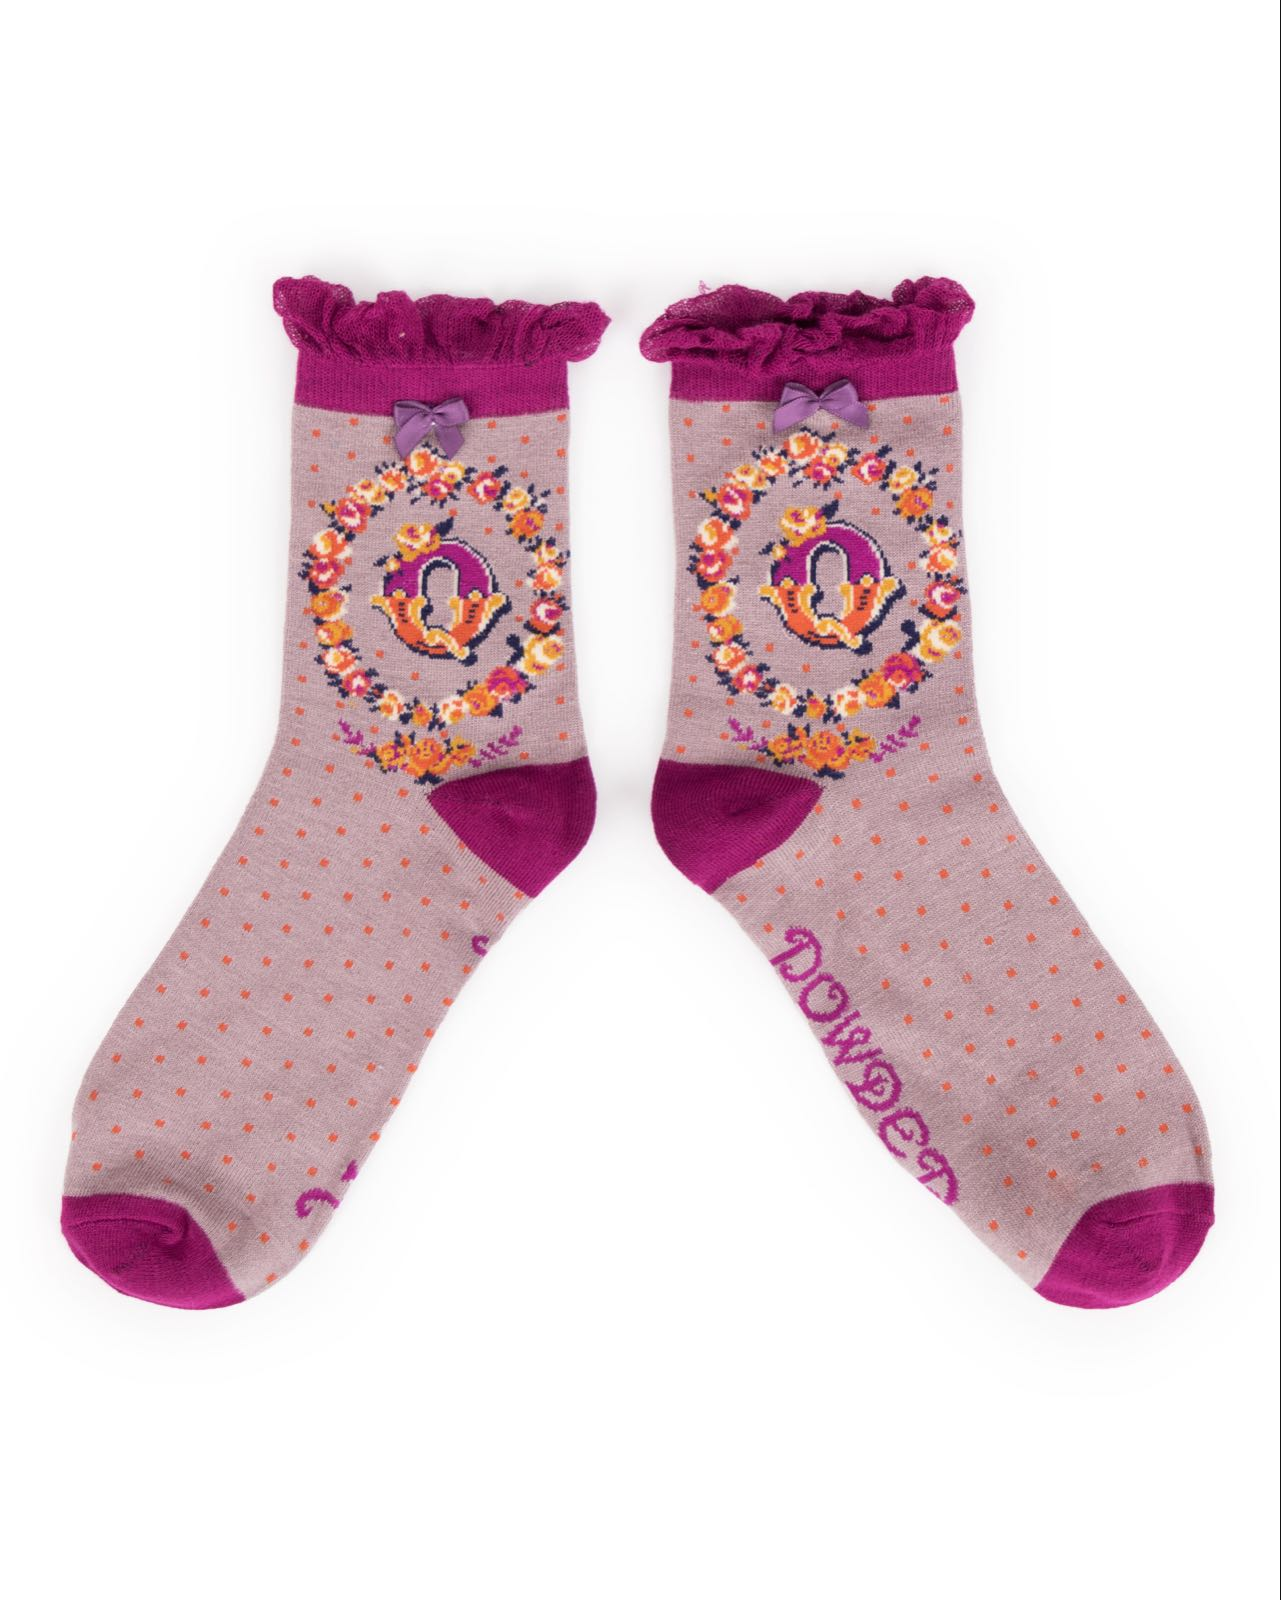 Powder Alphabet socks Q (product may differ from item shown in the photo)